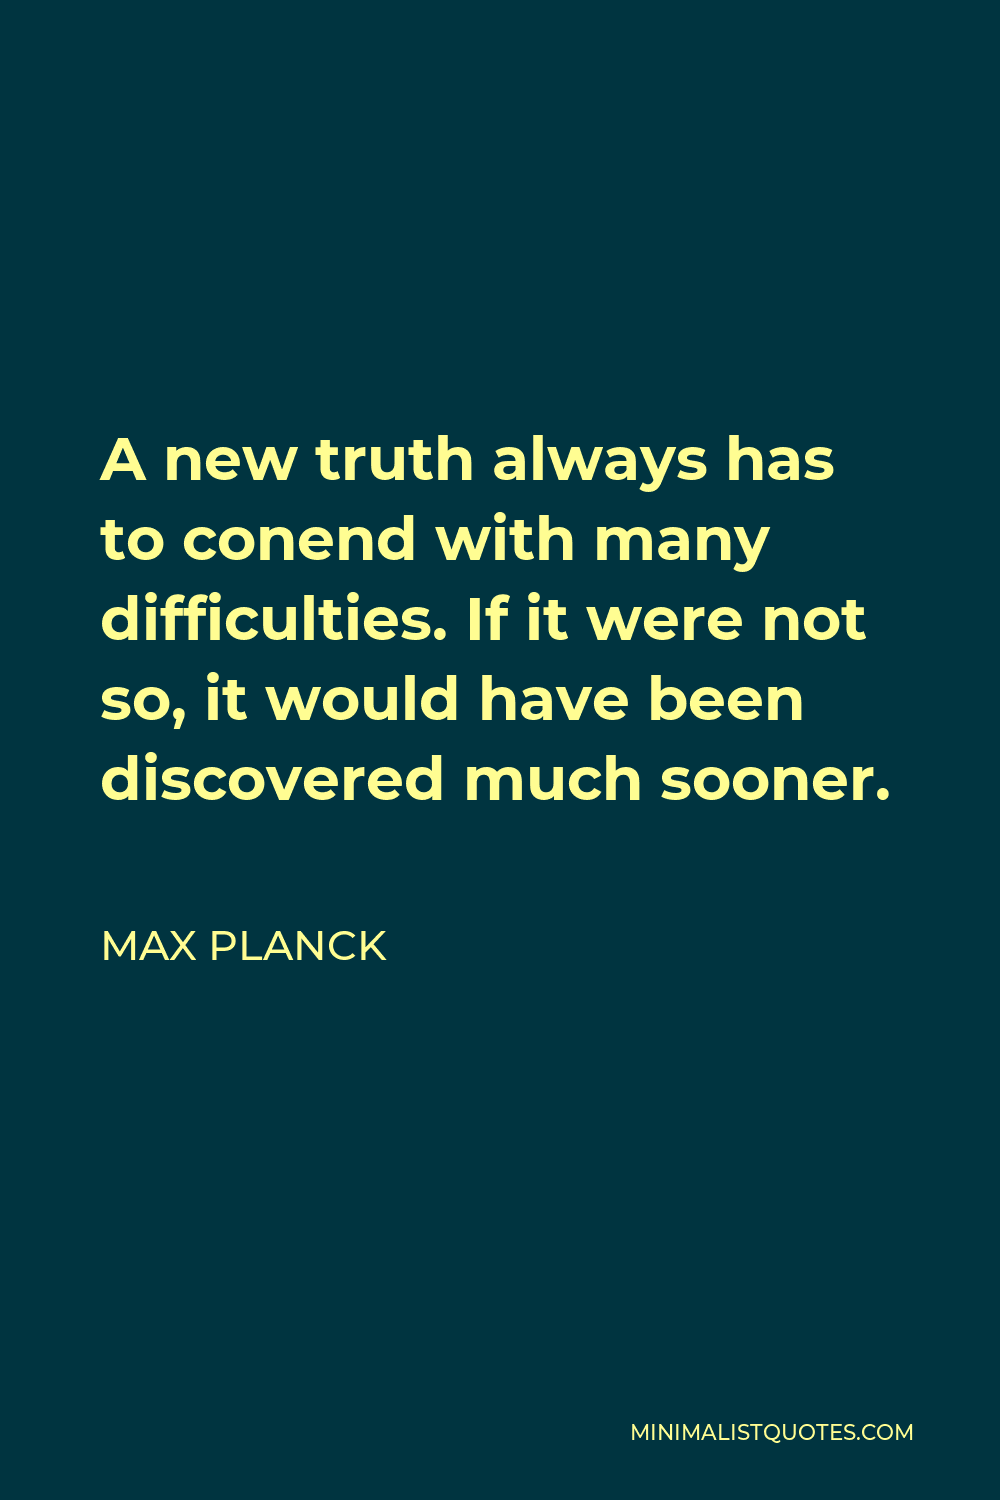 Max Planck Quote - A new truth always has to conend with many difficulties. If it were not so, it would have been discovered much sooner.